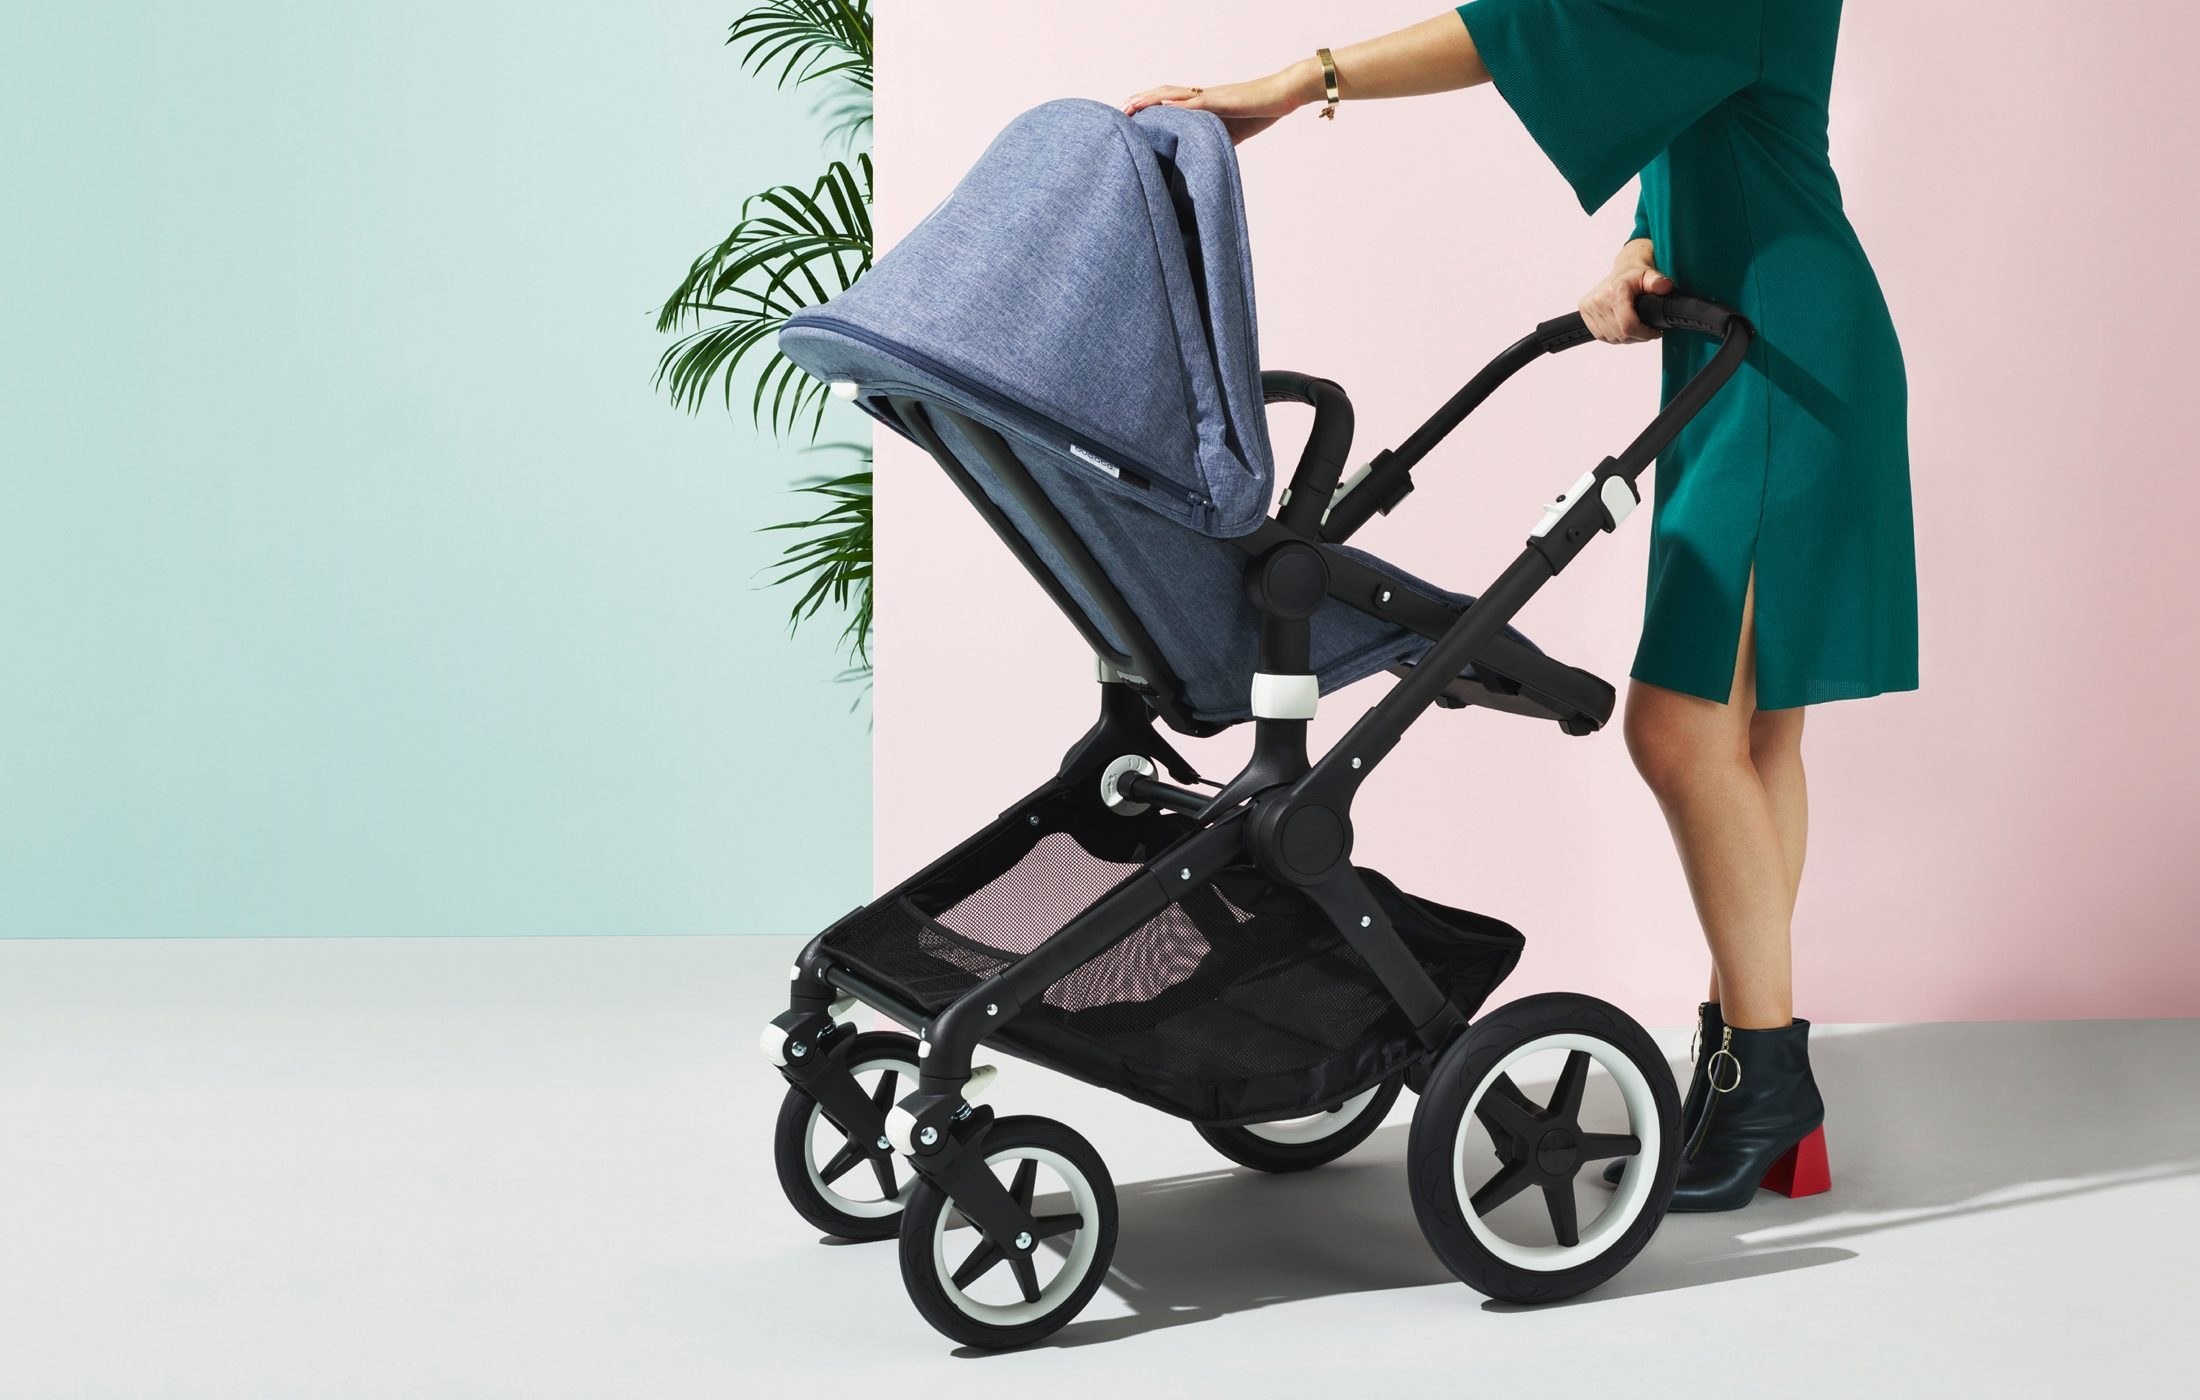 The 'Yes!' Stroller